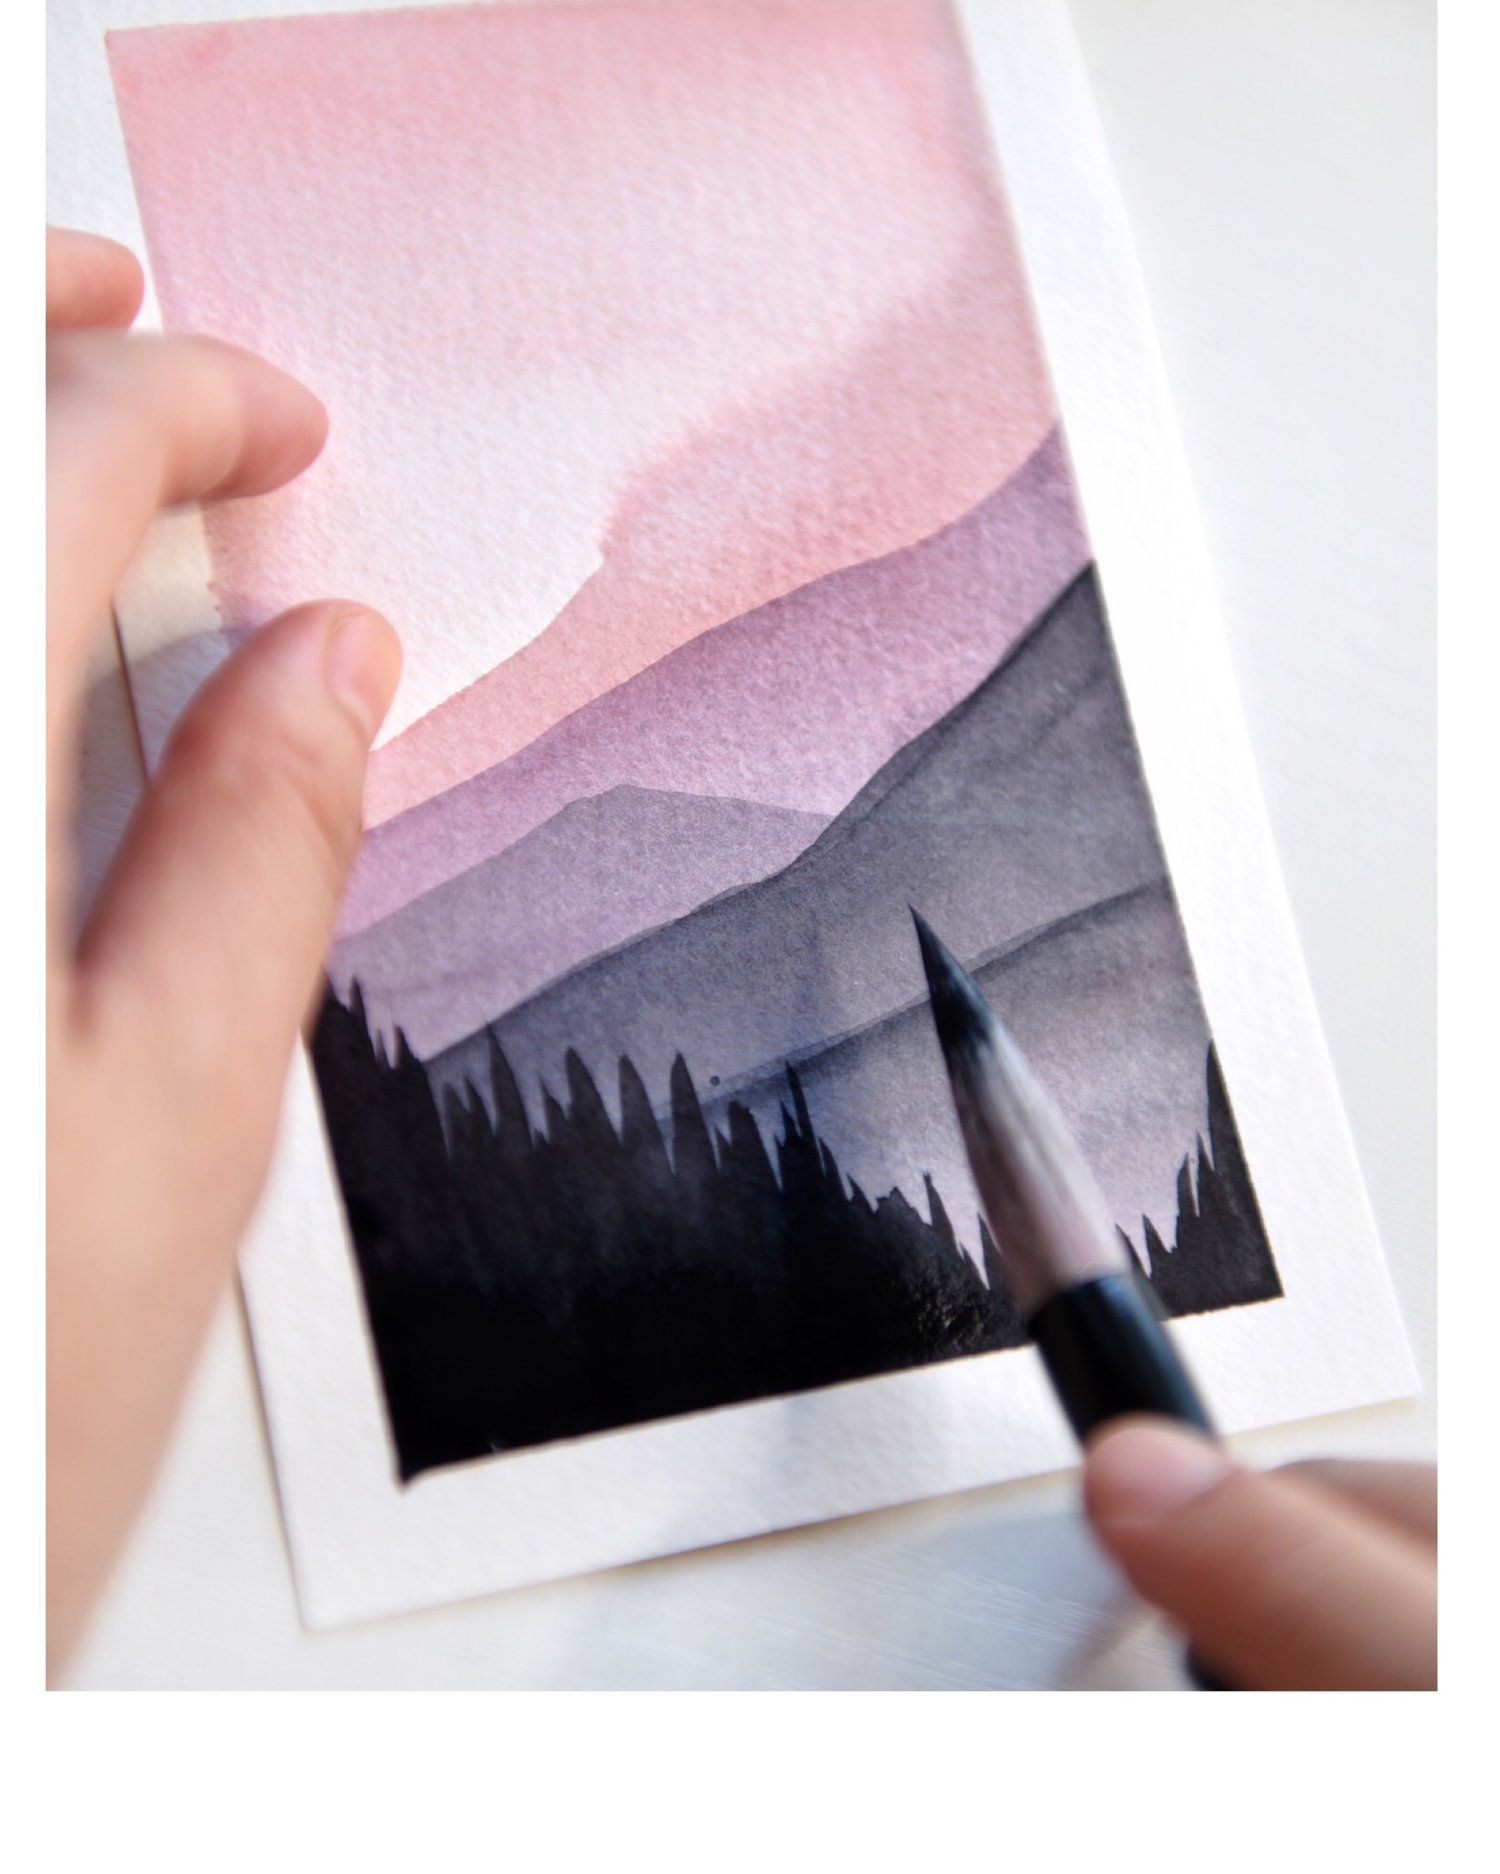 Watercolor Tutorial How To Paint Easy Landscape With Pink